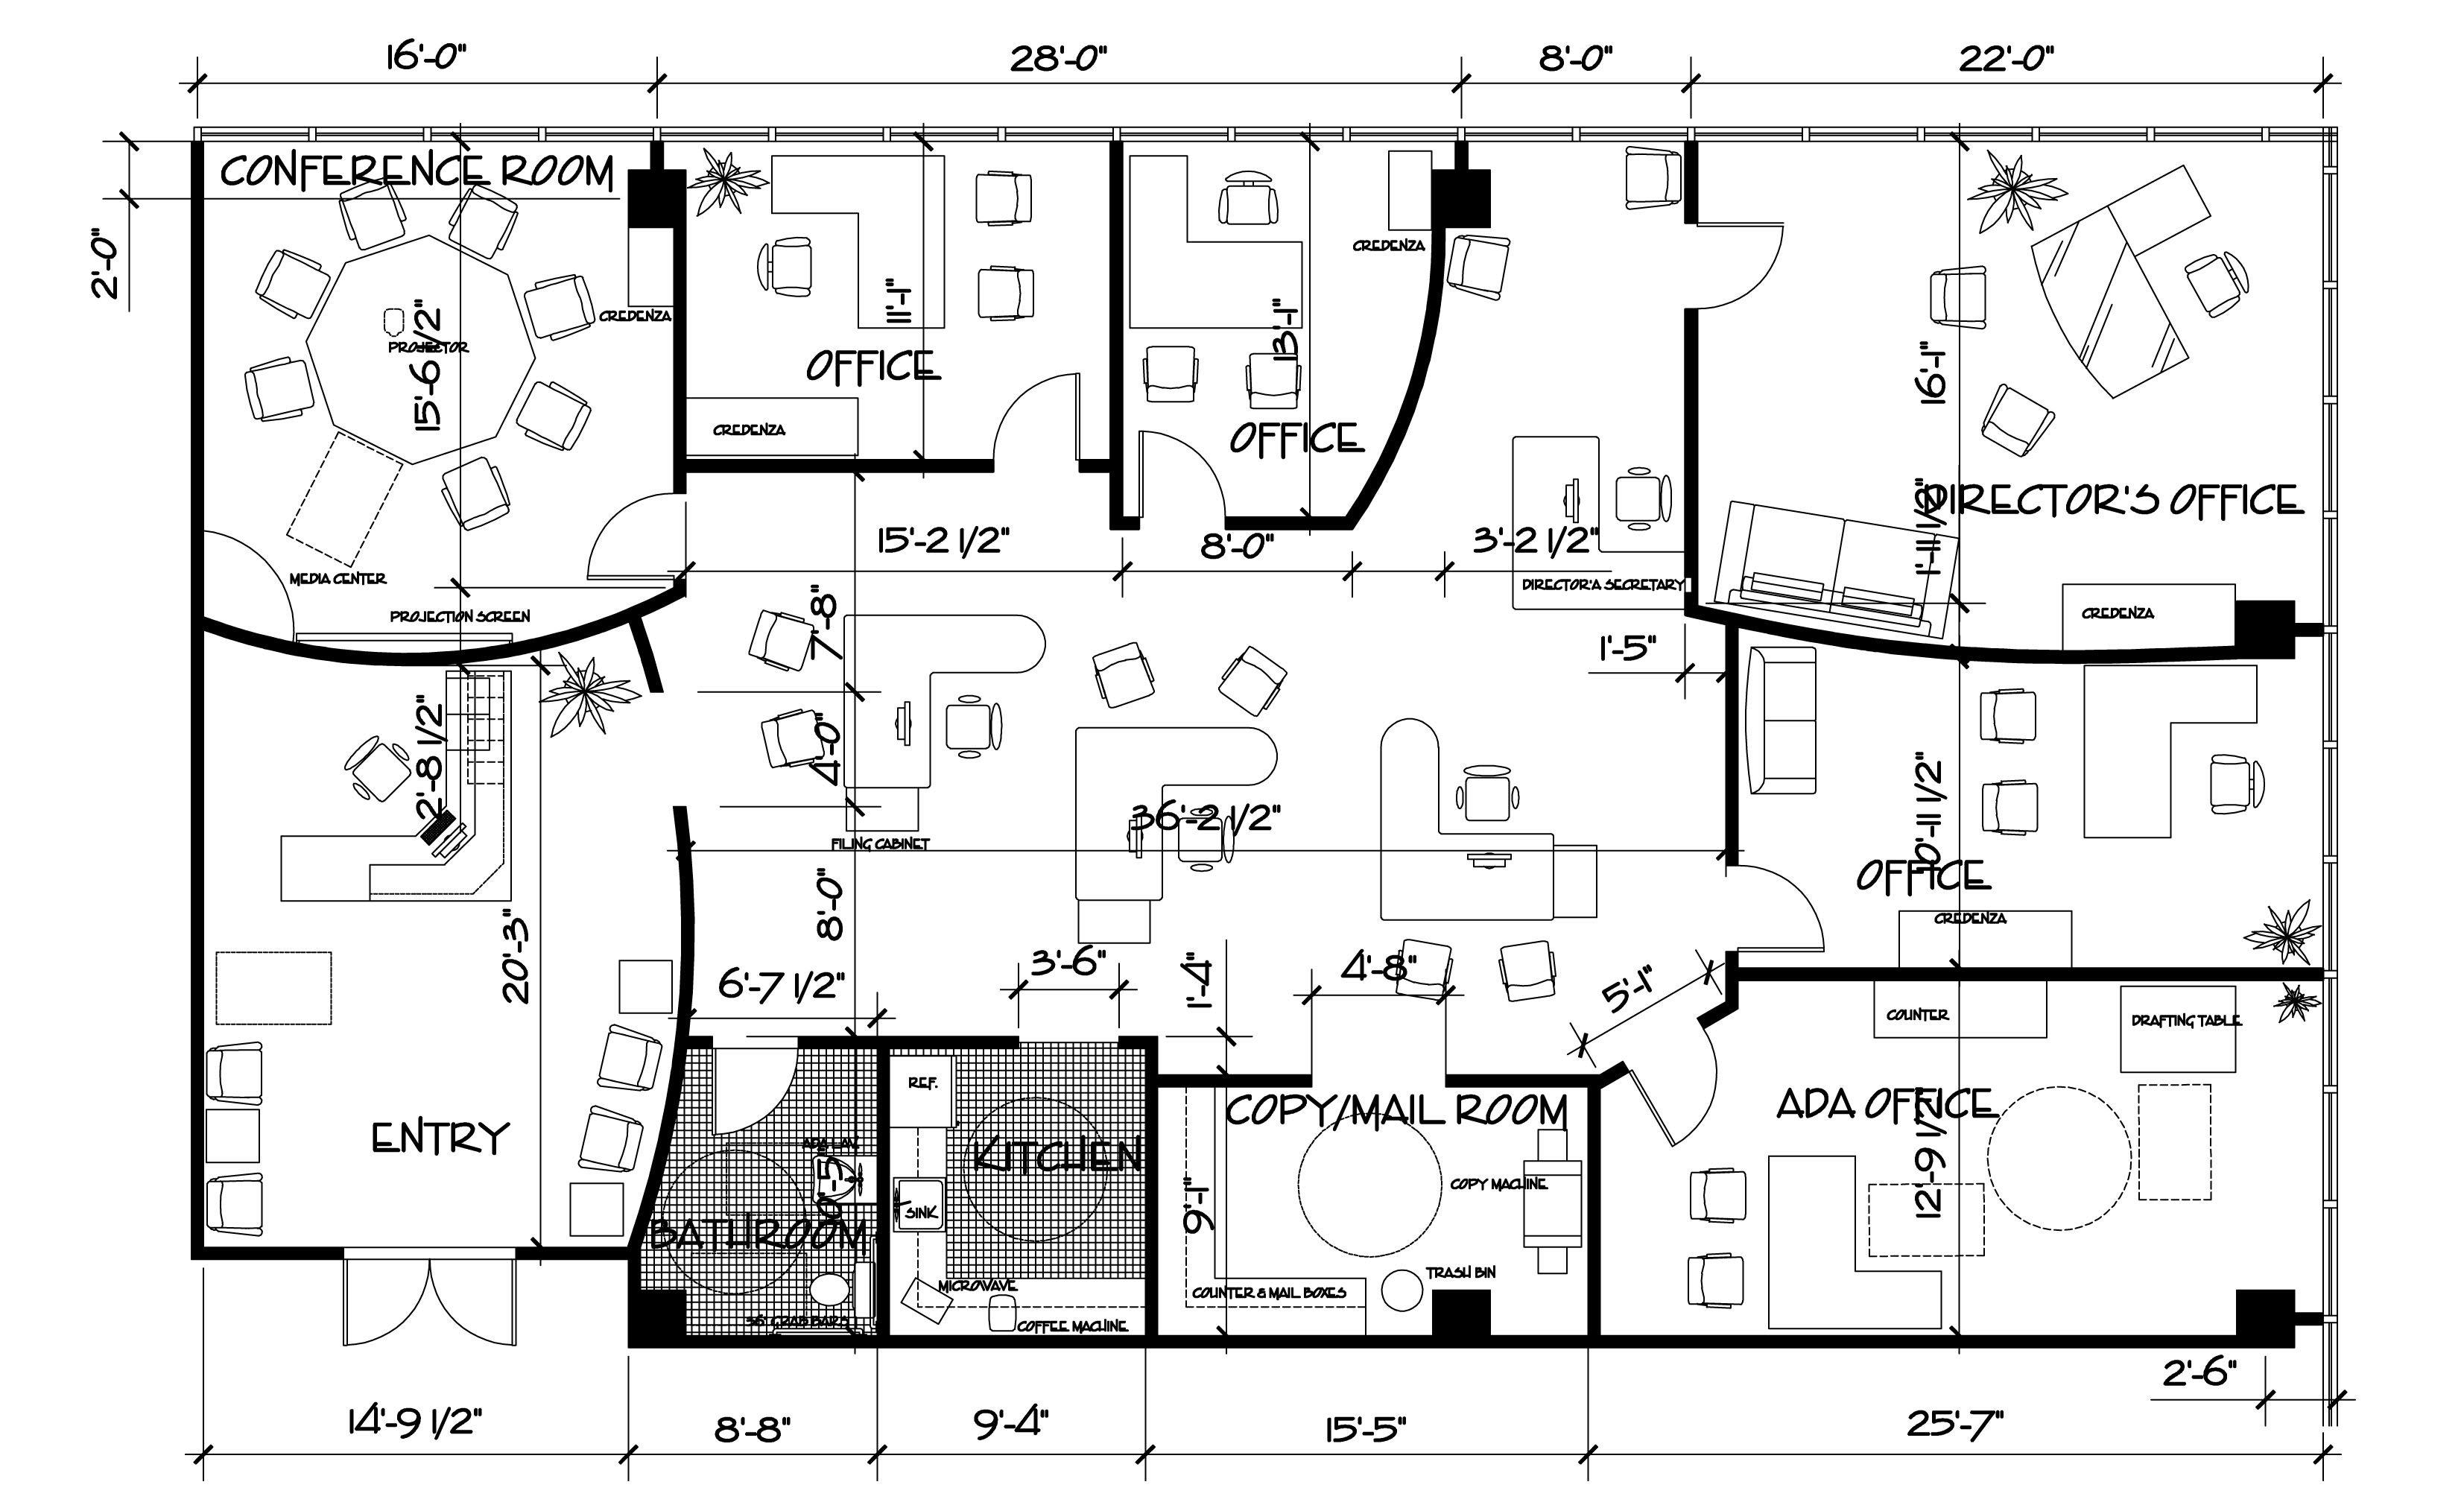 Design your architectural floor plan in autocad by Bobbiewriters on autocad civil 3d engineering drawings, autocad floor plan templates, autocad restaurant bar design plan, autocad drawings in 2d, architectural scale site plan, revit office floor plan, autocad drawing house plan, photoshop site rendering floor plan,